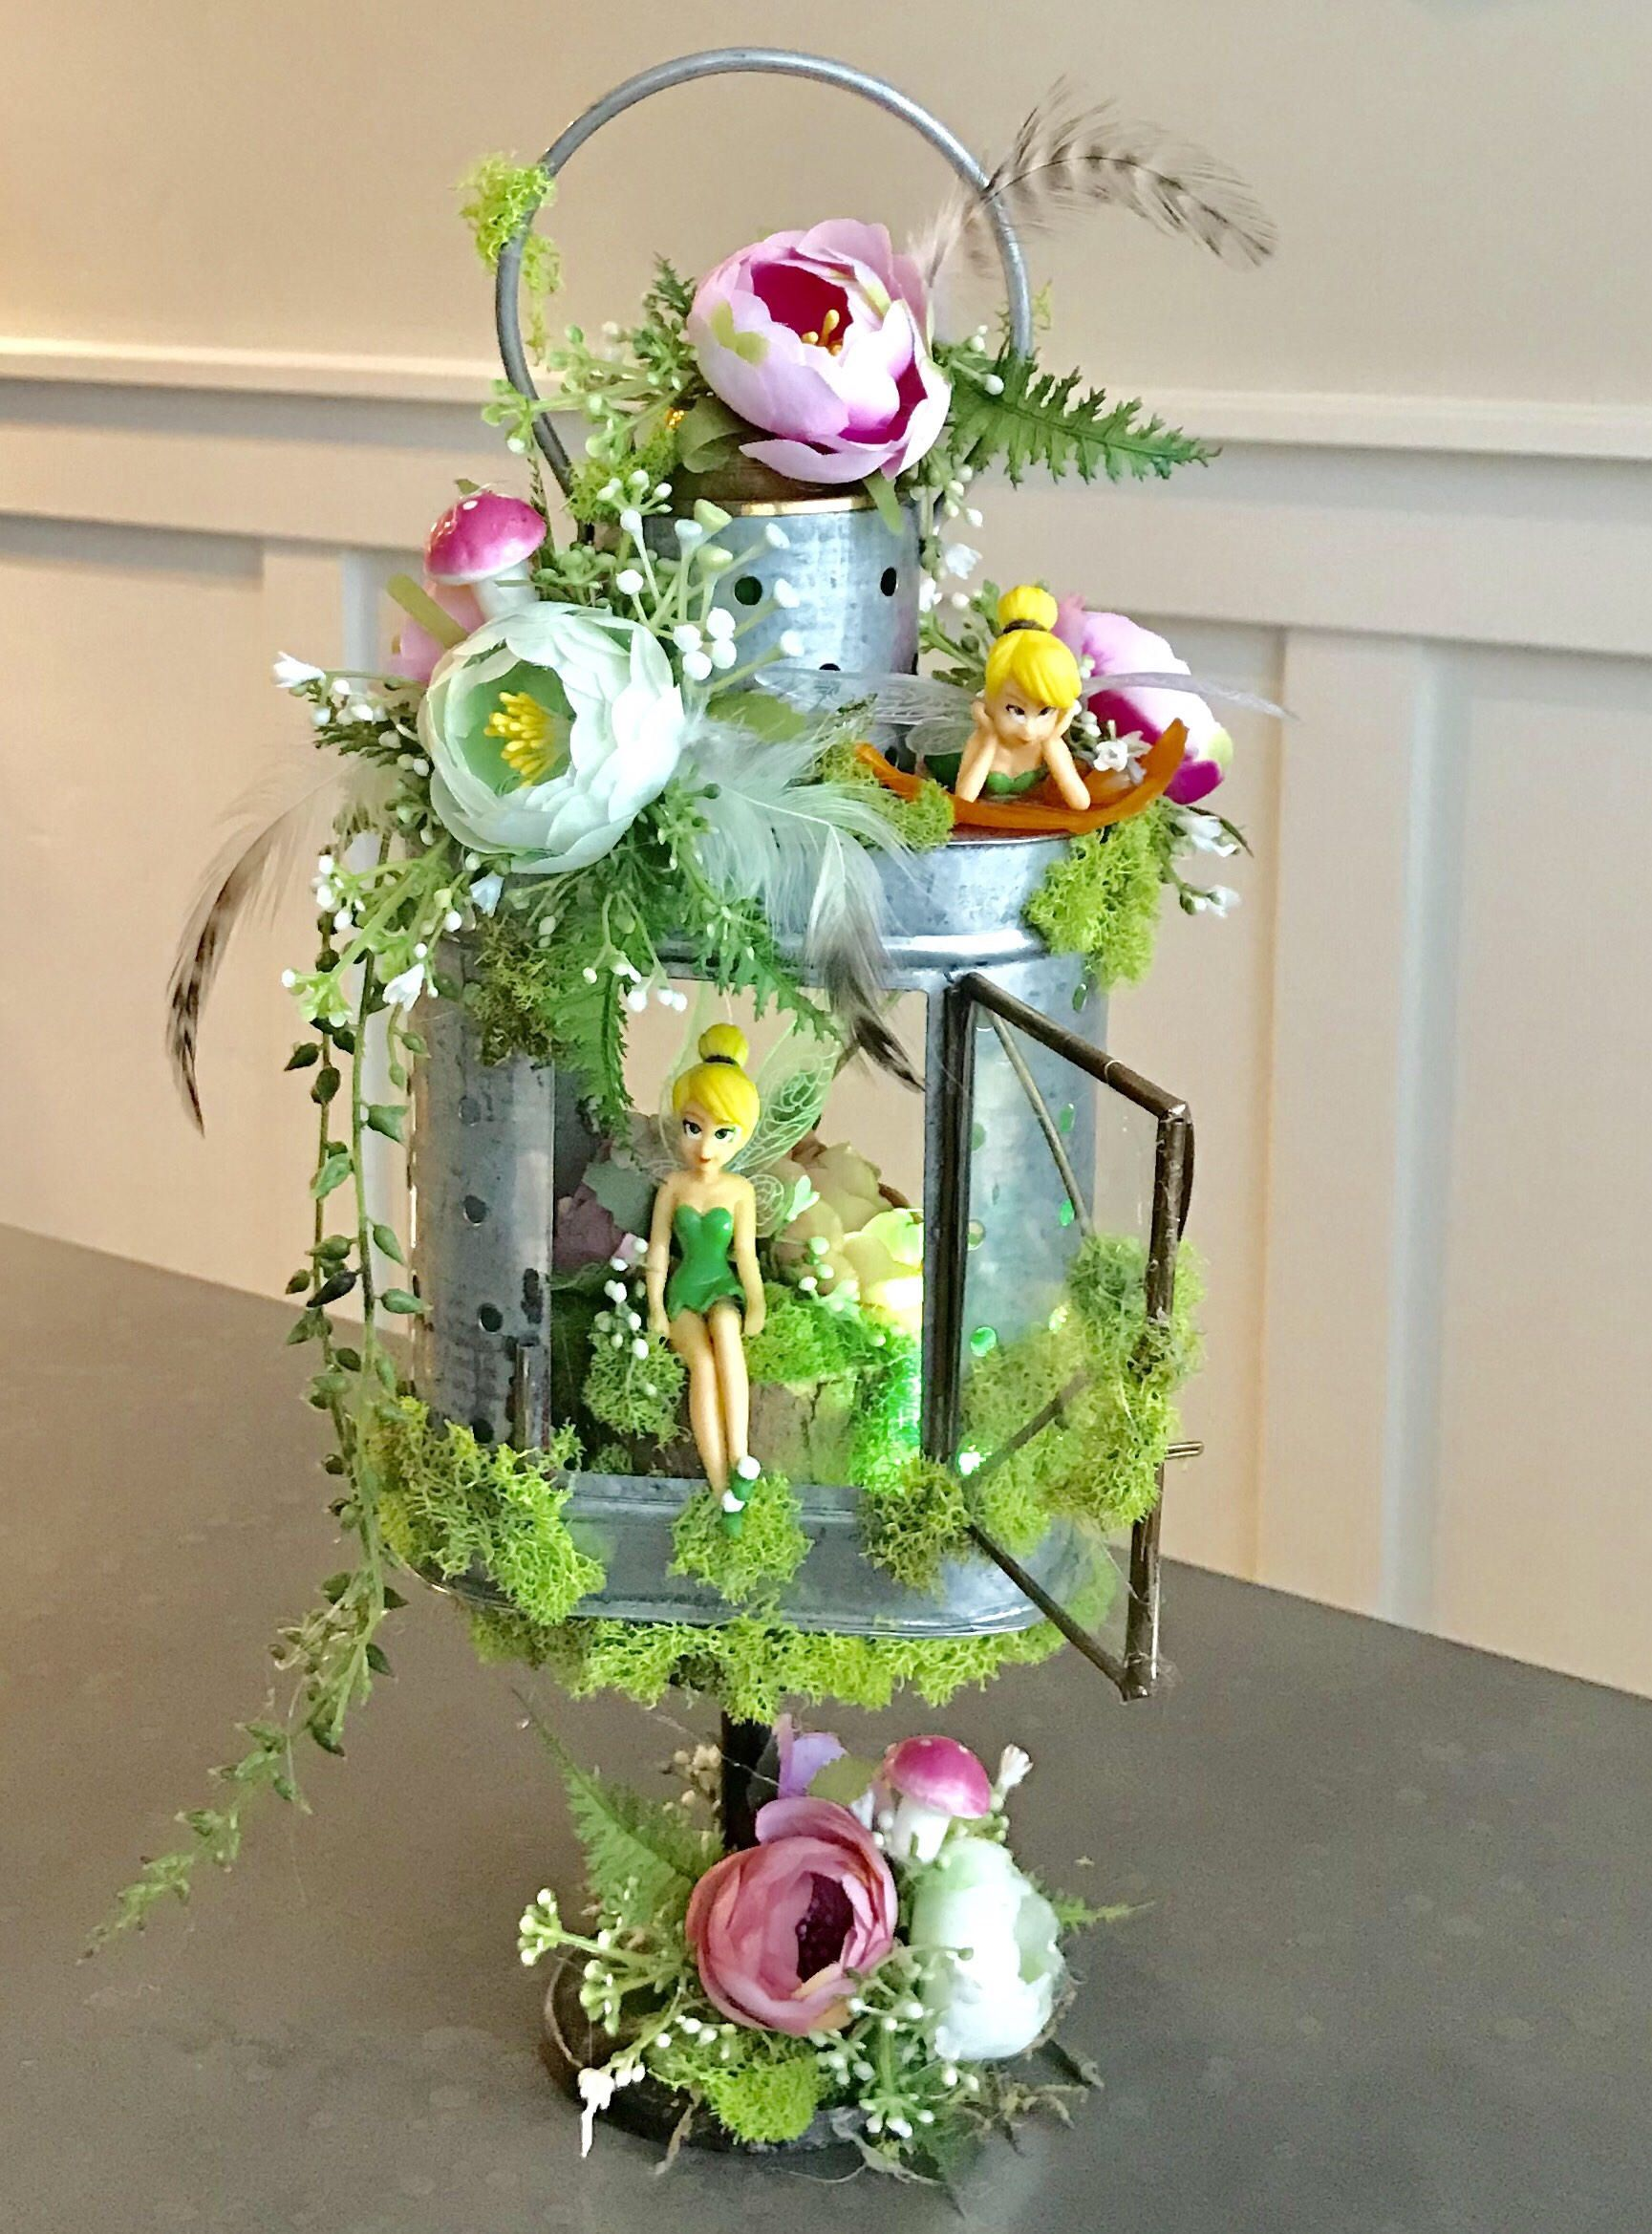 Garden decor for baby shower  Tinkerbell Lighted Centerpiece candle  Enchanted Forest